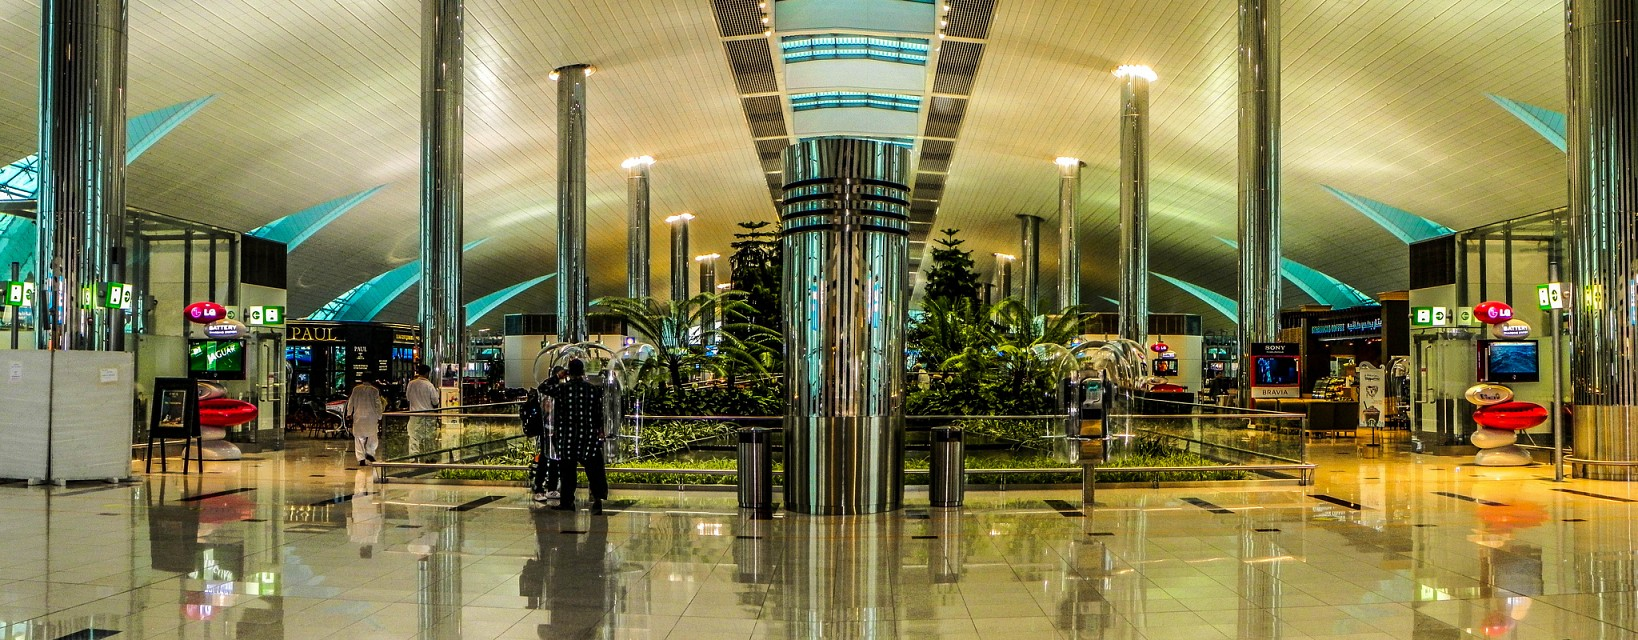 Dubai Airport - مطار دبي -